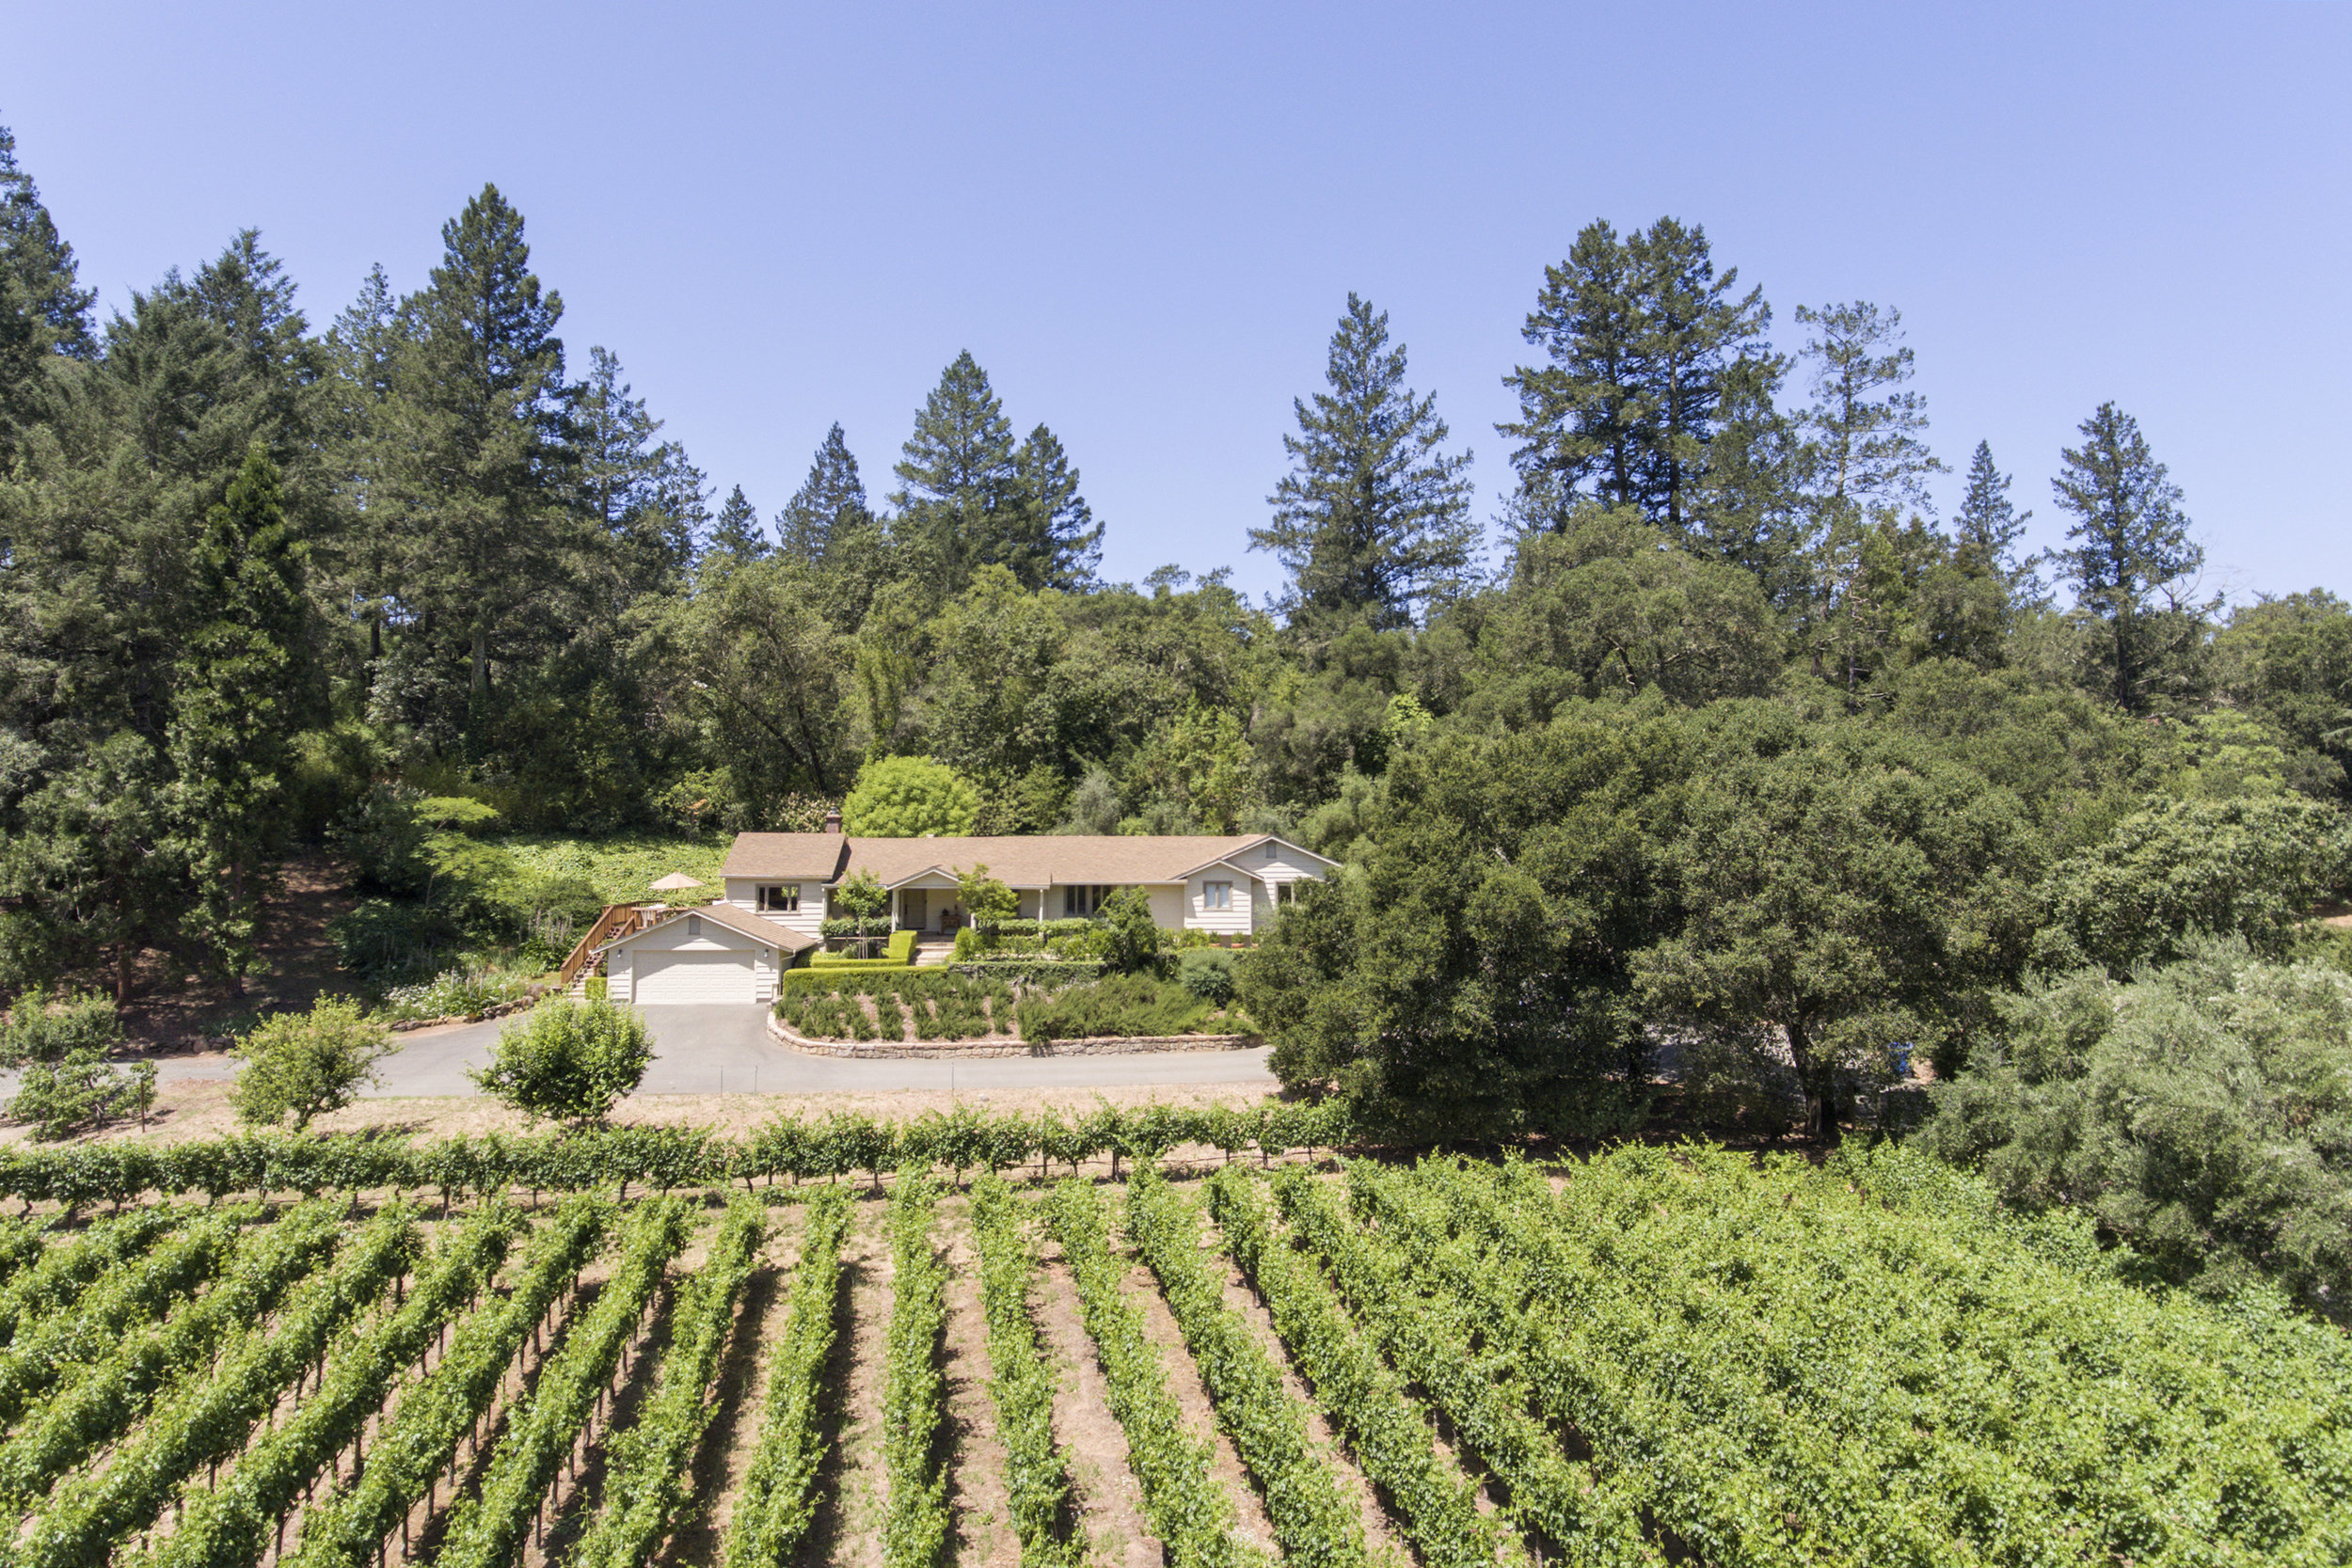 VINEYARD | PRIVACY | OUTDOOR LIVING    107 Lilac Lane, St. Helena  $1,795,000    VIEW DETAILS